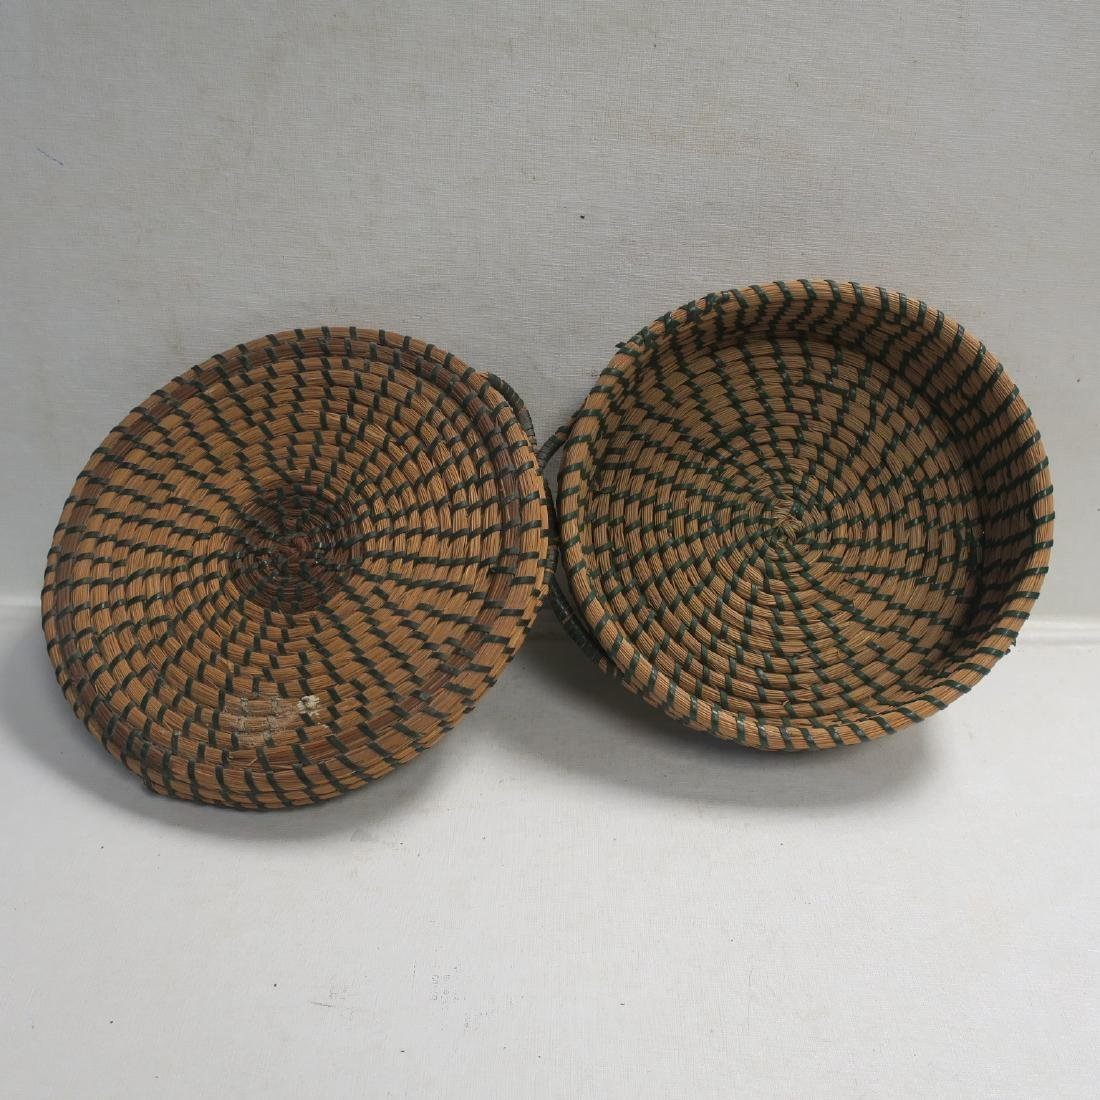 Hand Woven Closed Coil Sewing Basket: - 2